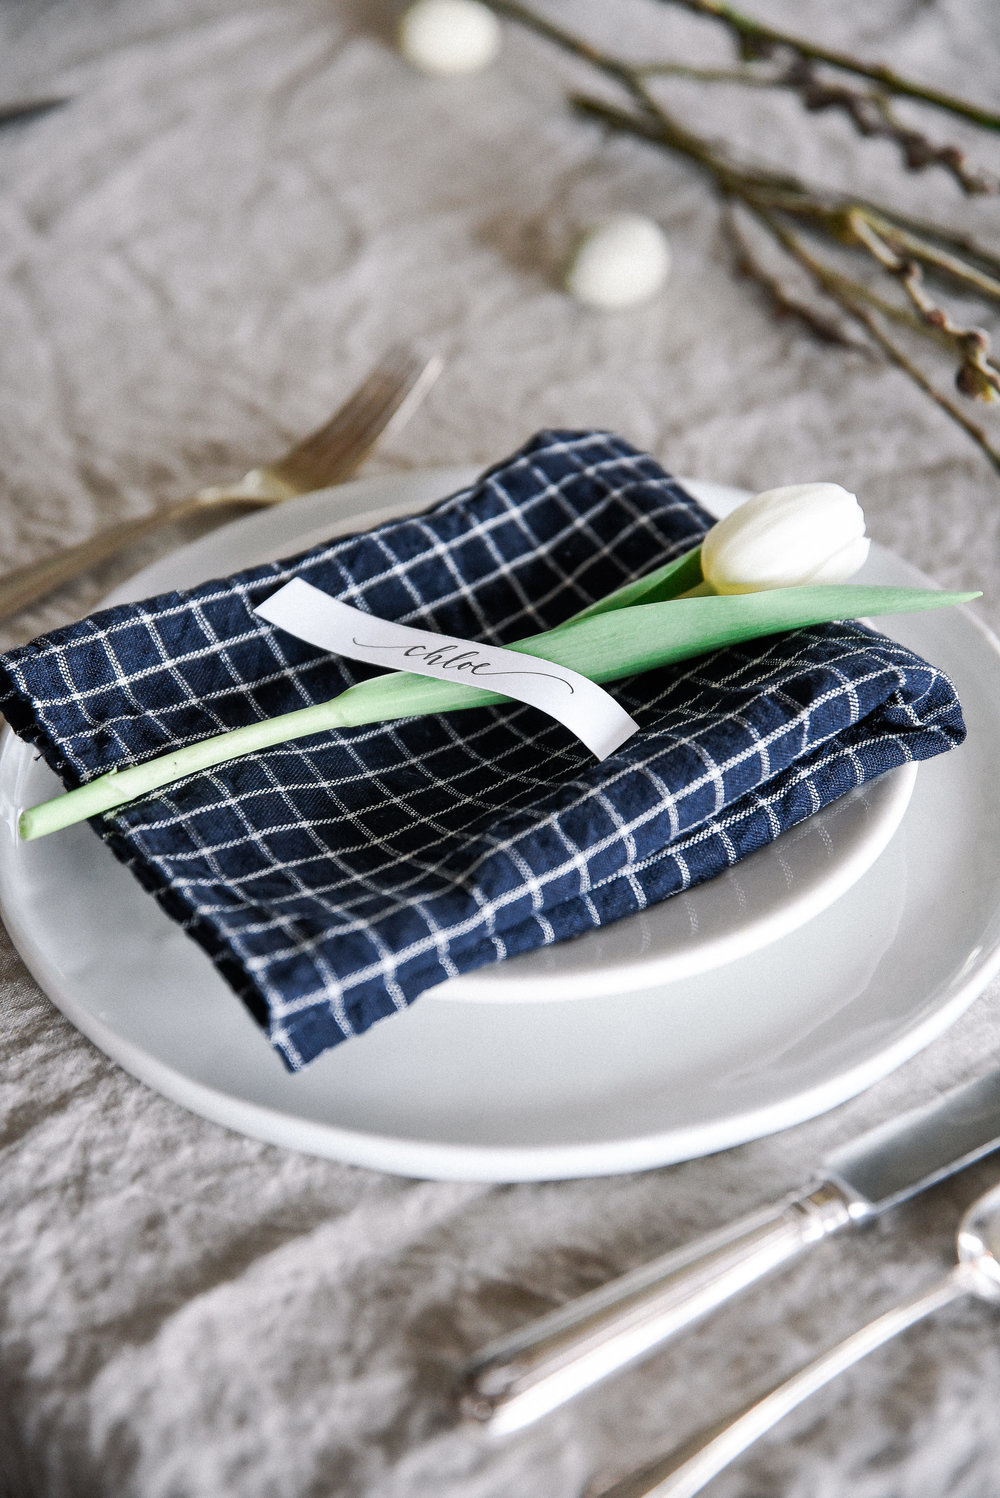 Easter table decor with checker print easter table linens and tulip - boxwoodavenue.com #easter #eastertable #easterdecor